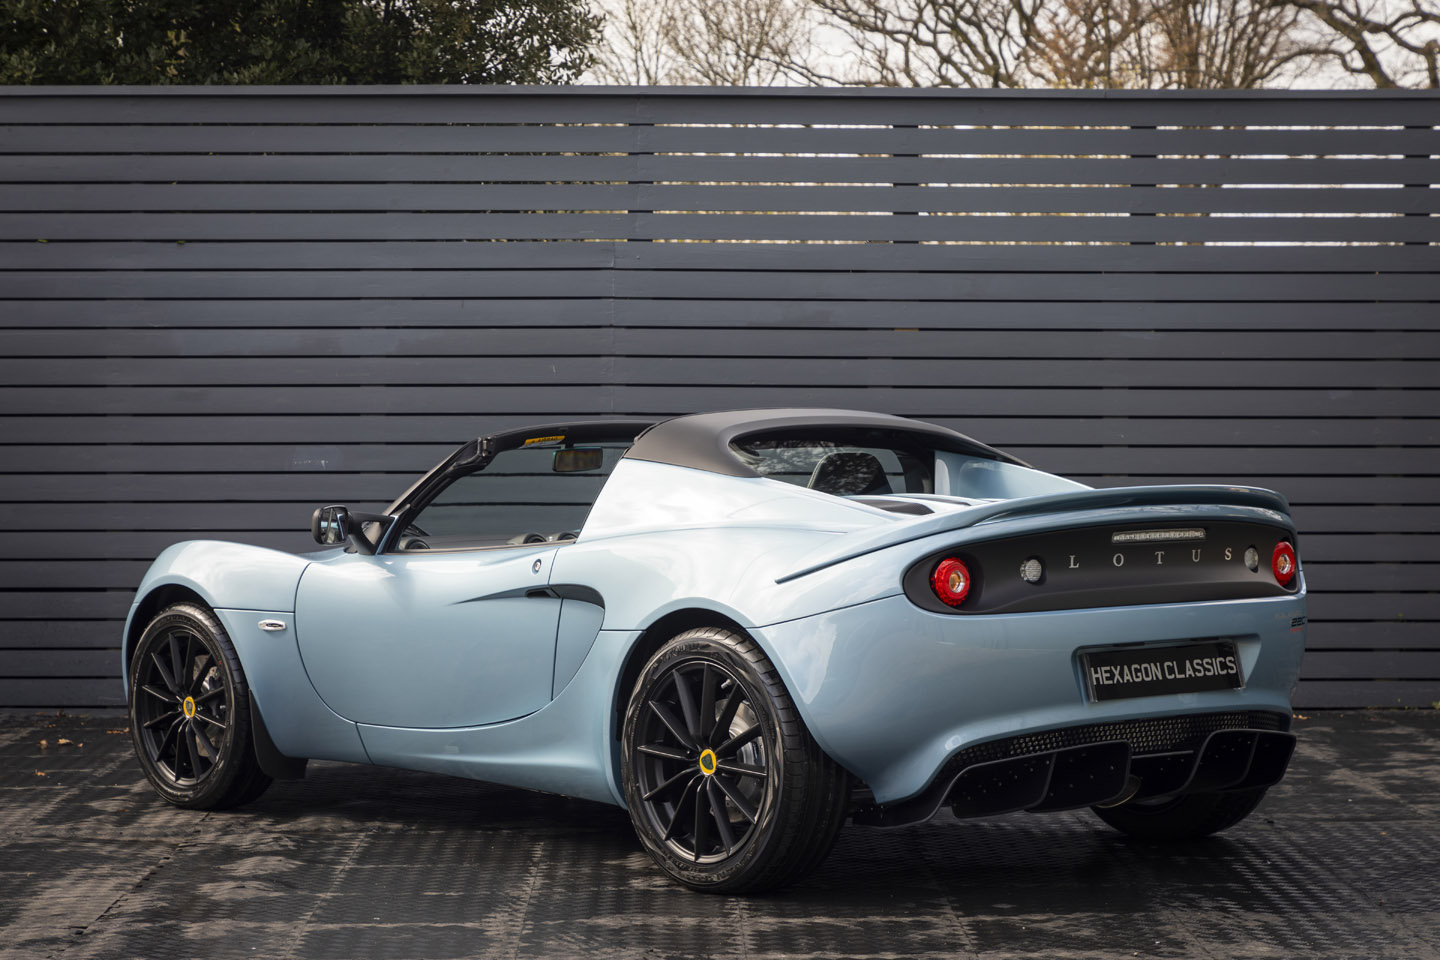 2019 LOTUS ELISE 220 SPORT For Sale (picture 2 of 6)